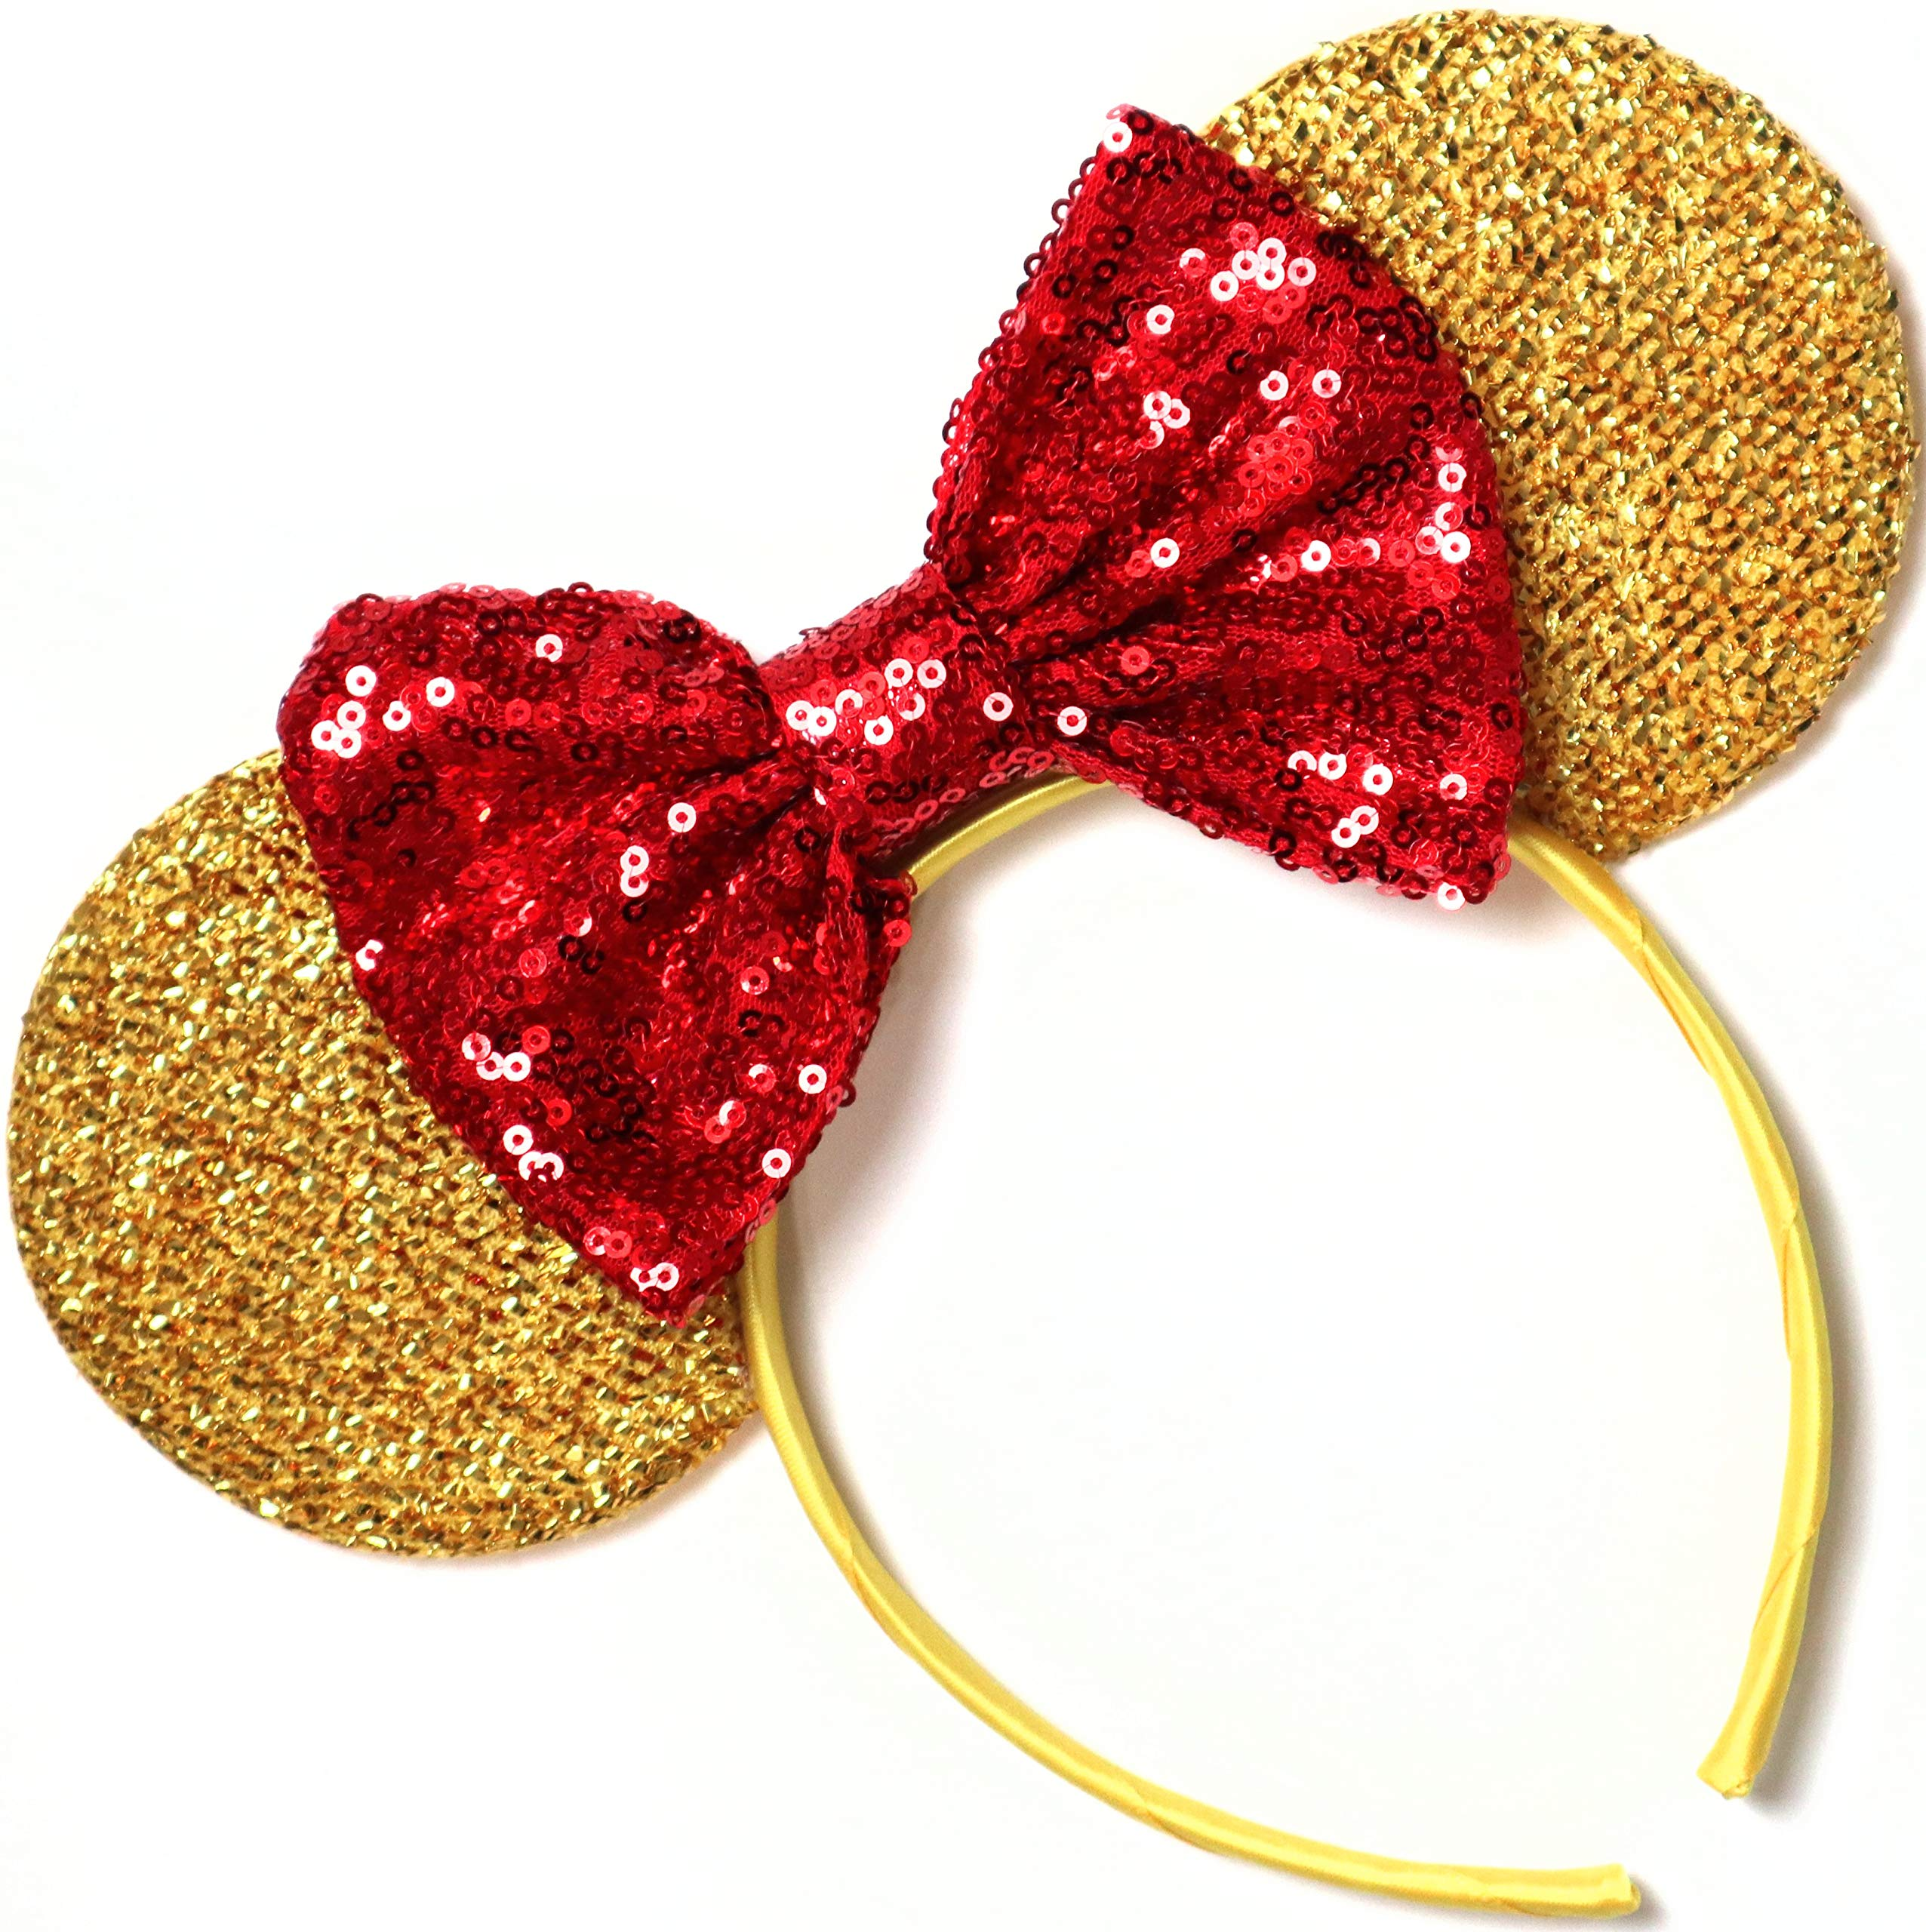 Beauty and the Beast Ears, Belle Ears, Belle Mickey Ears, Disney Inspired Beauty and the Beast Ears, Gold Minnie ears, by CLGIFT